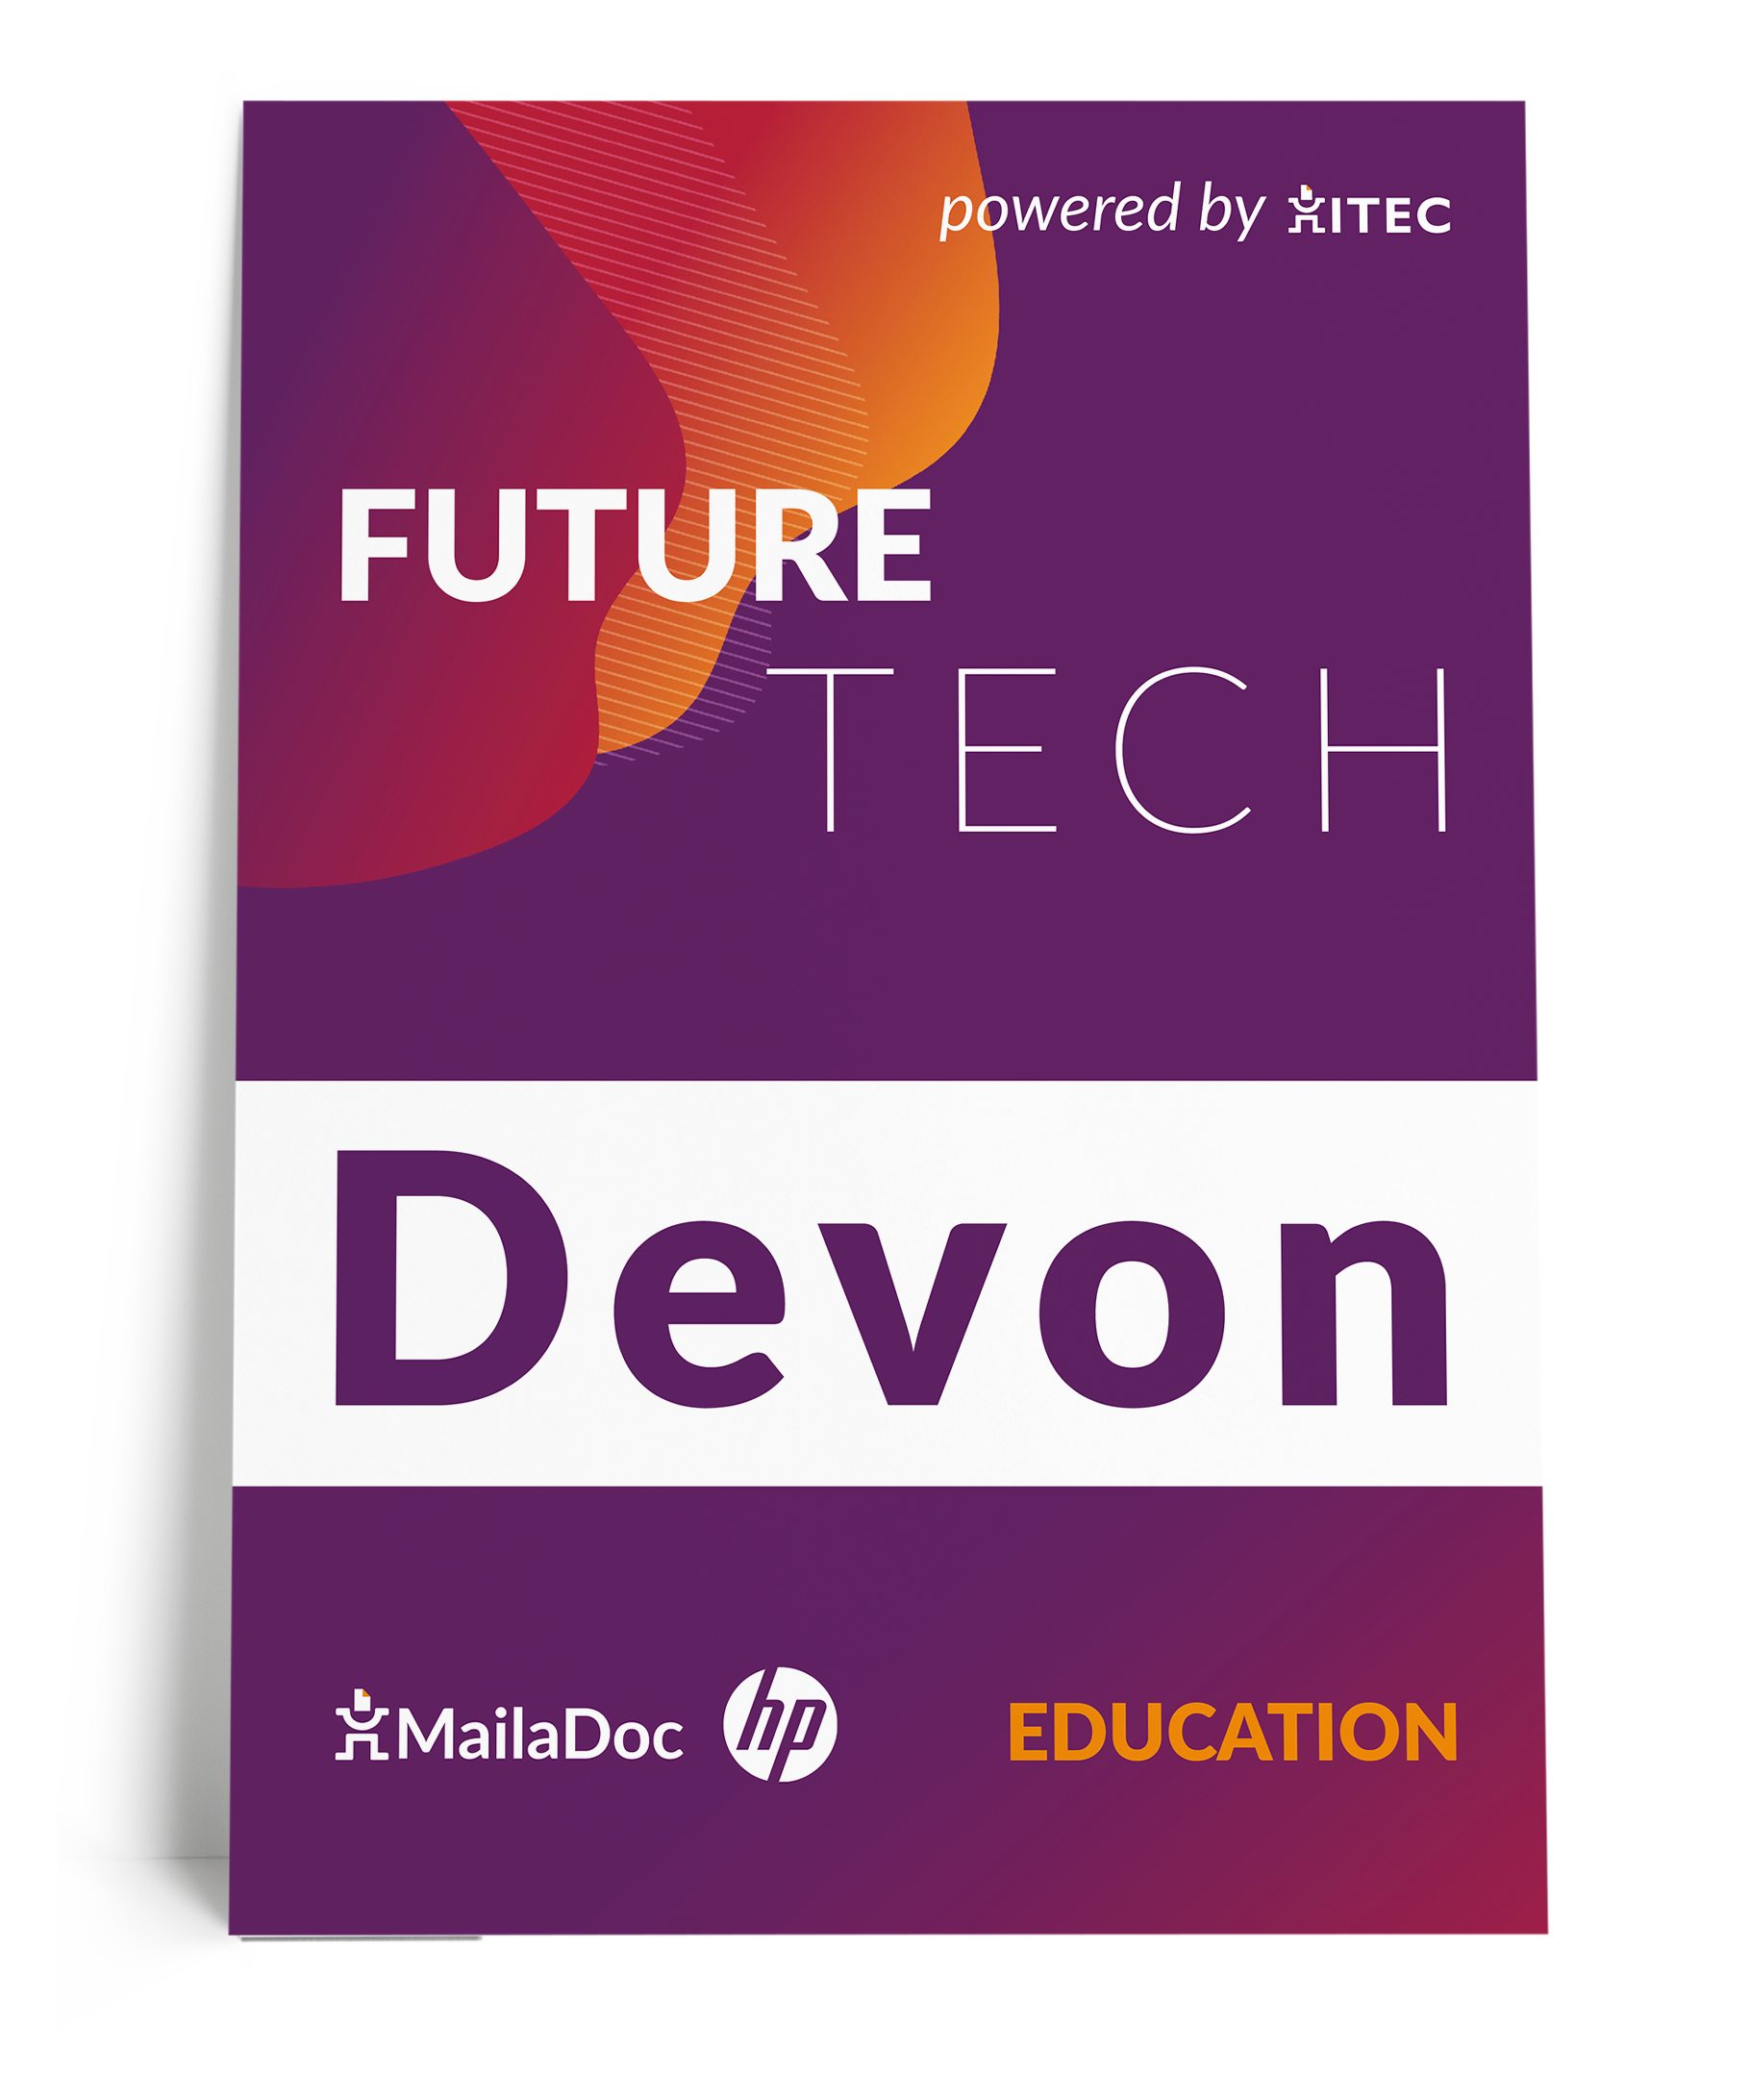 Future%20Tech%20Devon%20(Exeter)%20-%20Education